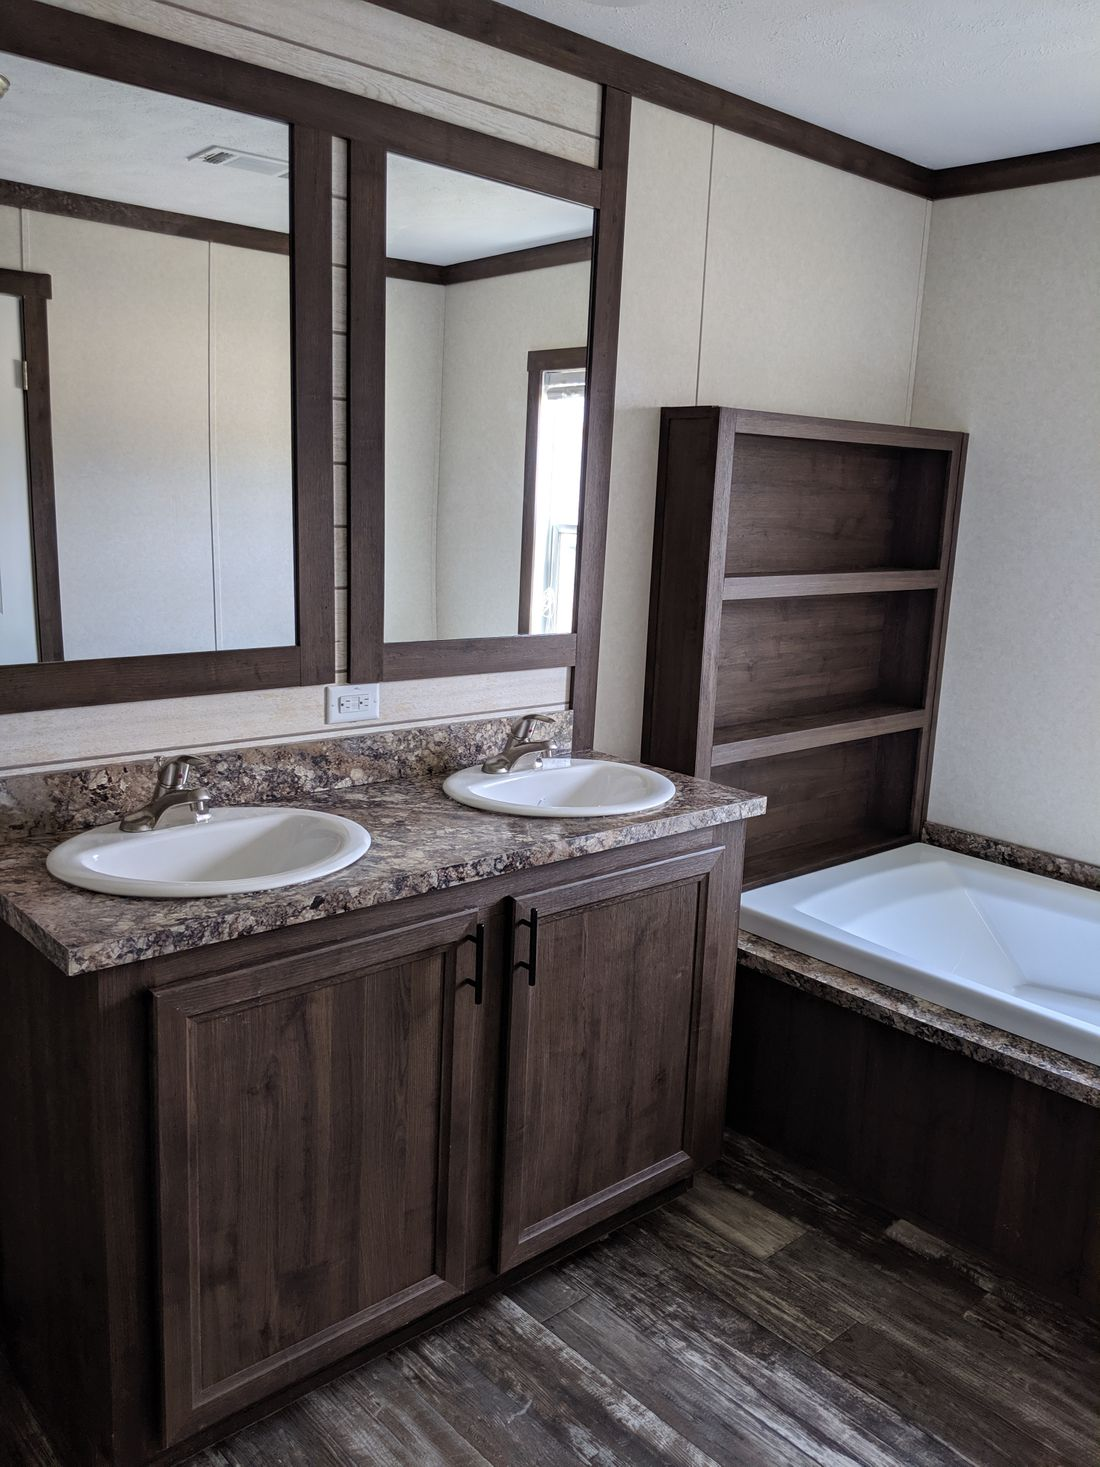 The CS1676-C Master Bathroom. This Manufactured Mobile Home features 3 bedrooms and 2 baths.